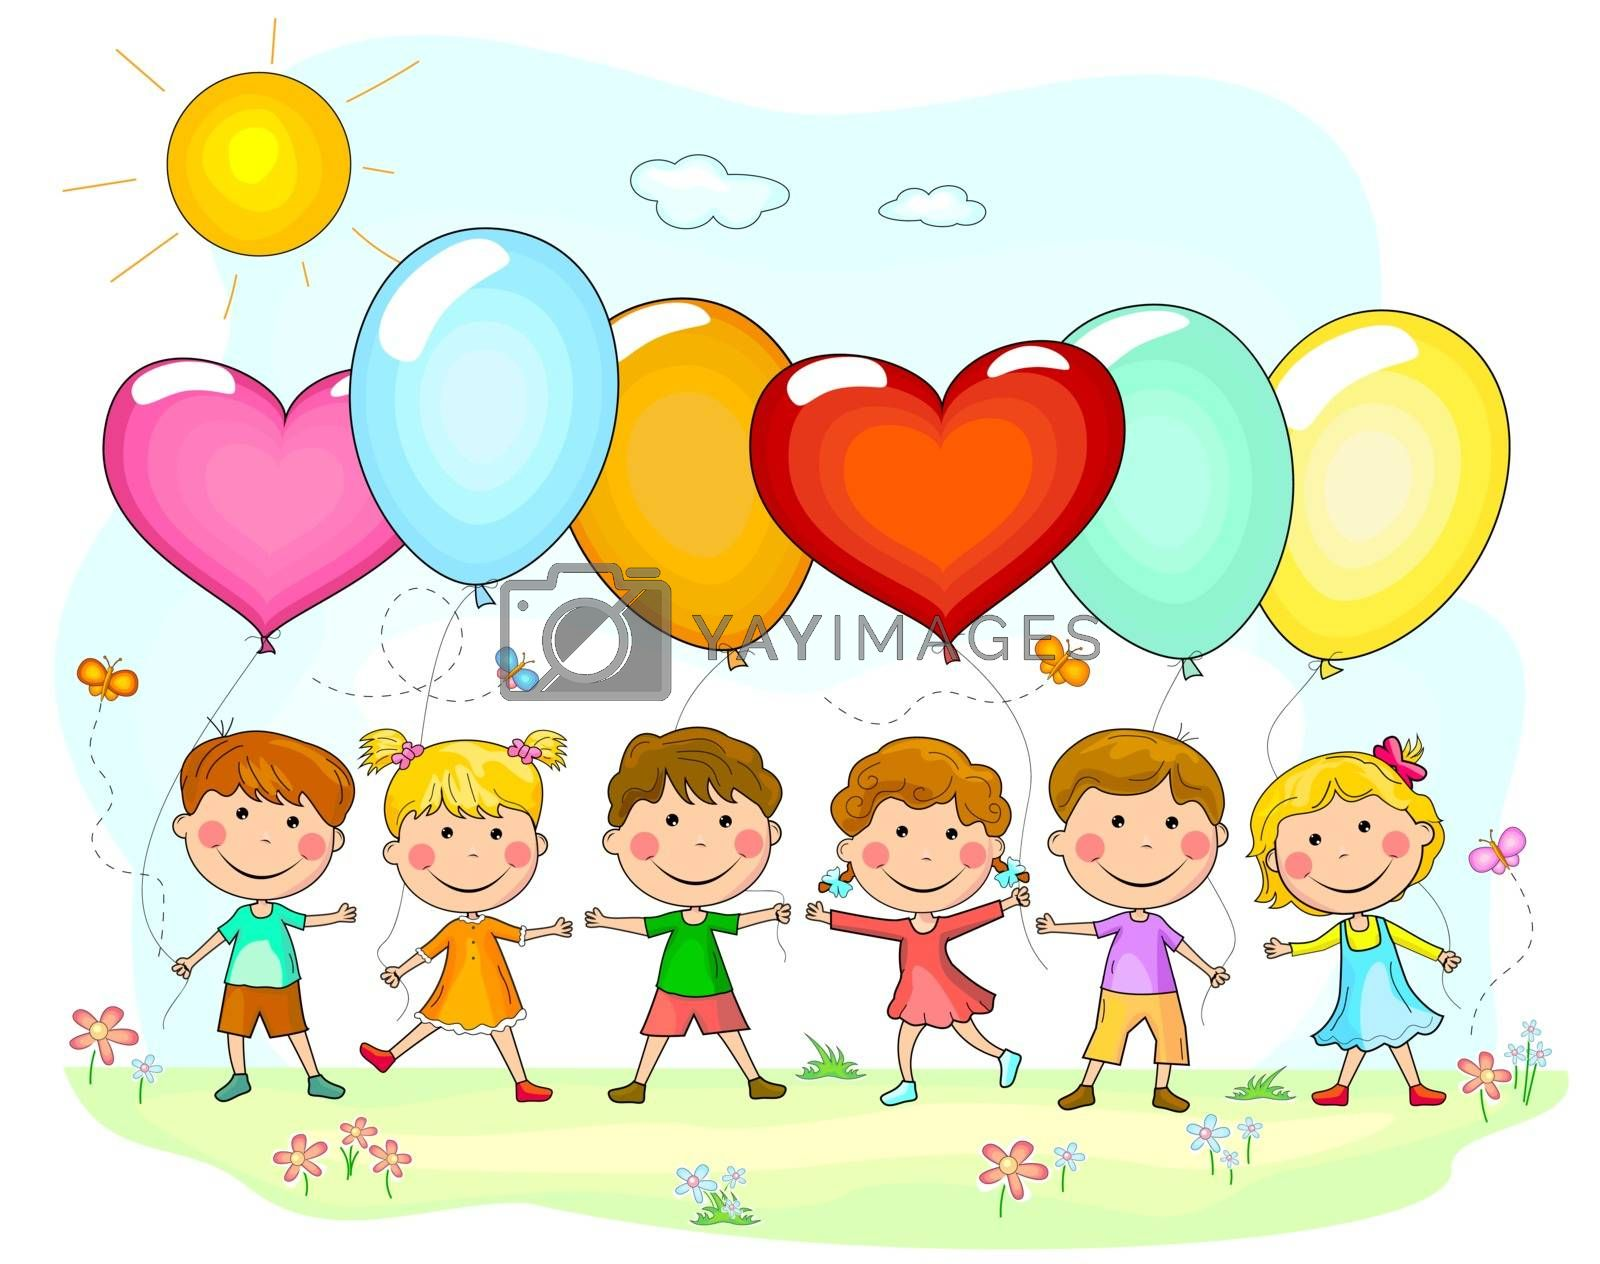 Group of children with balloons. Cartoon kids with balloons in nature.